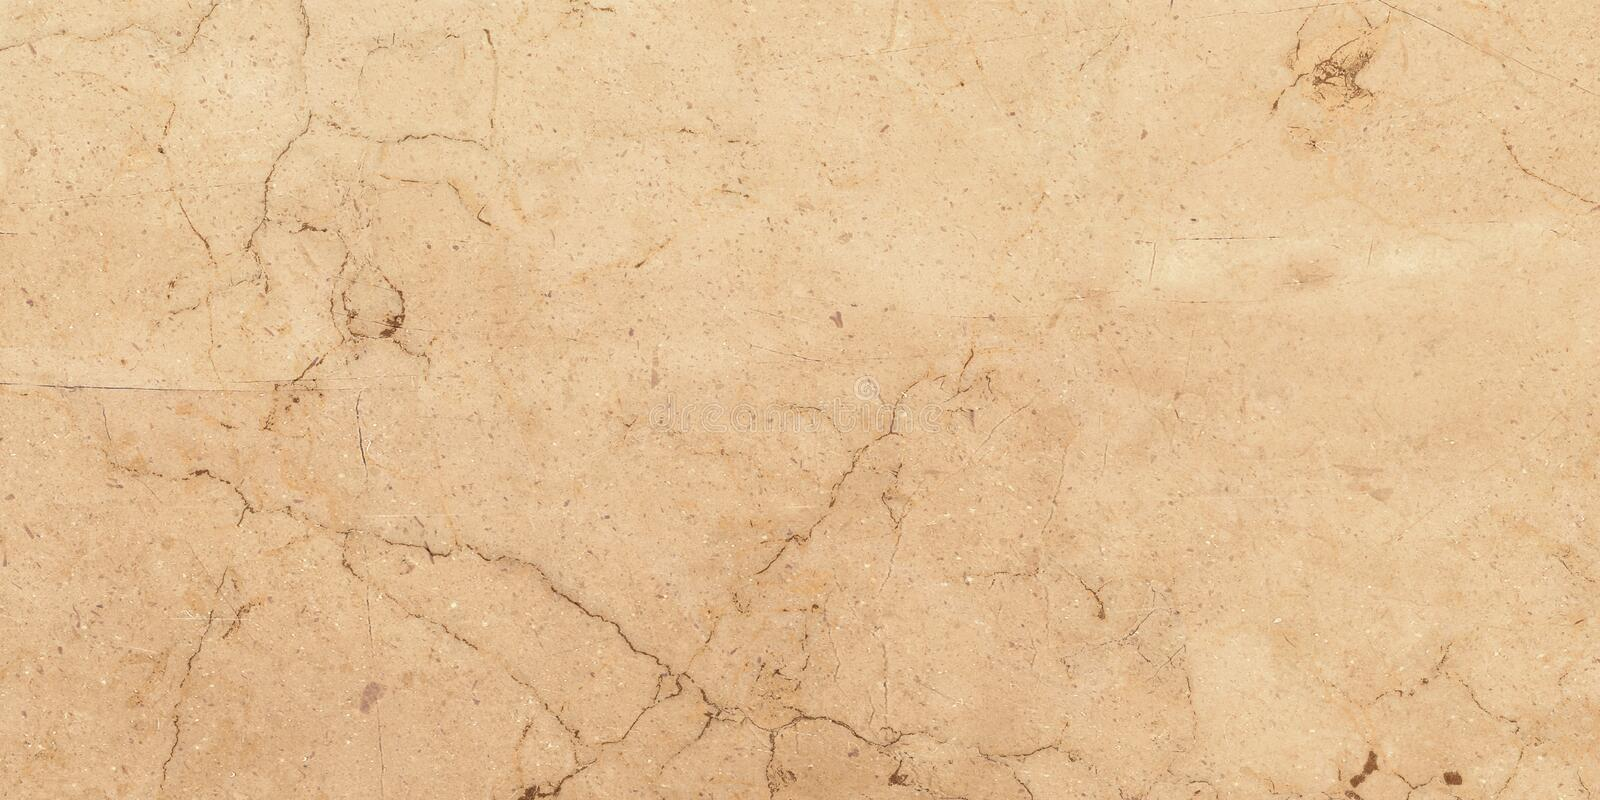 Ceramic porcelain stoneware tile texture or pattern. Natural stone beige color with veining stock images